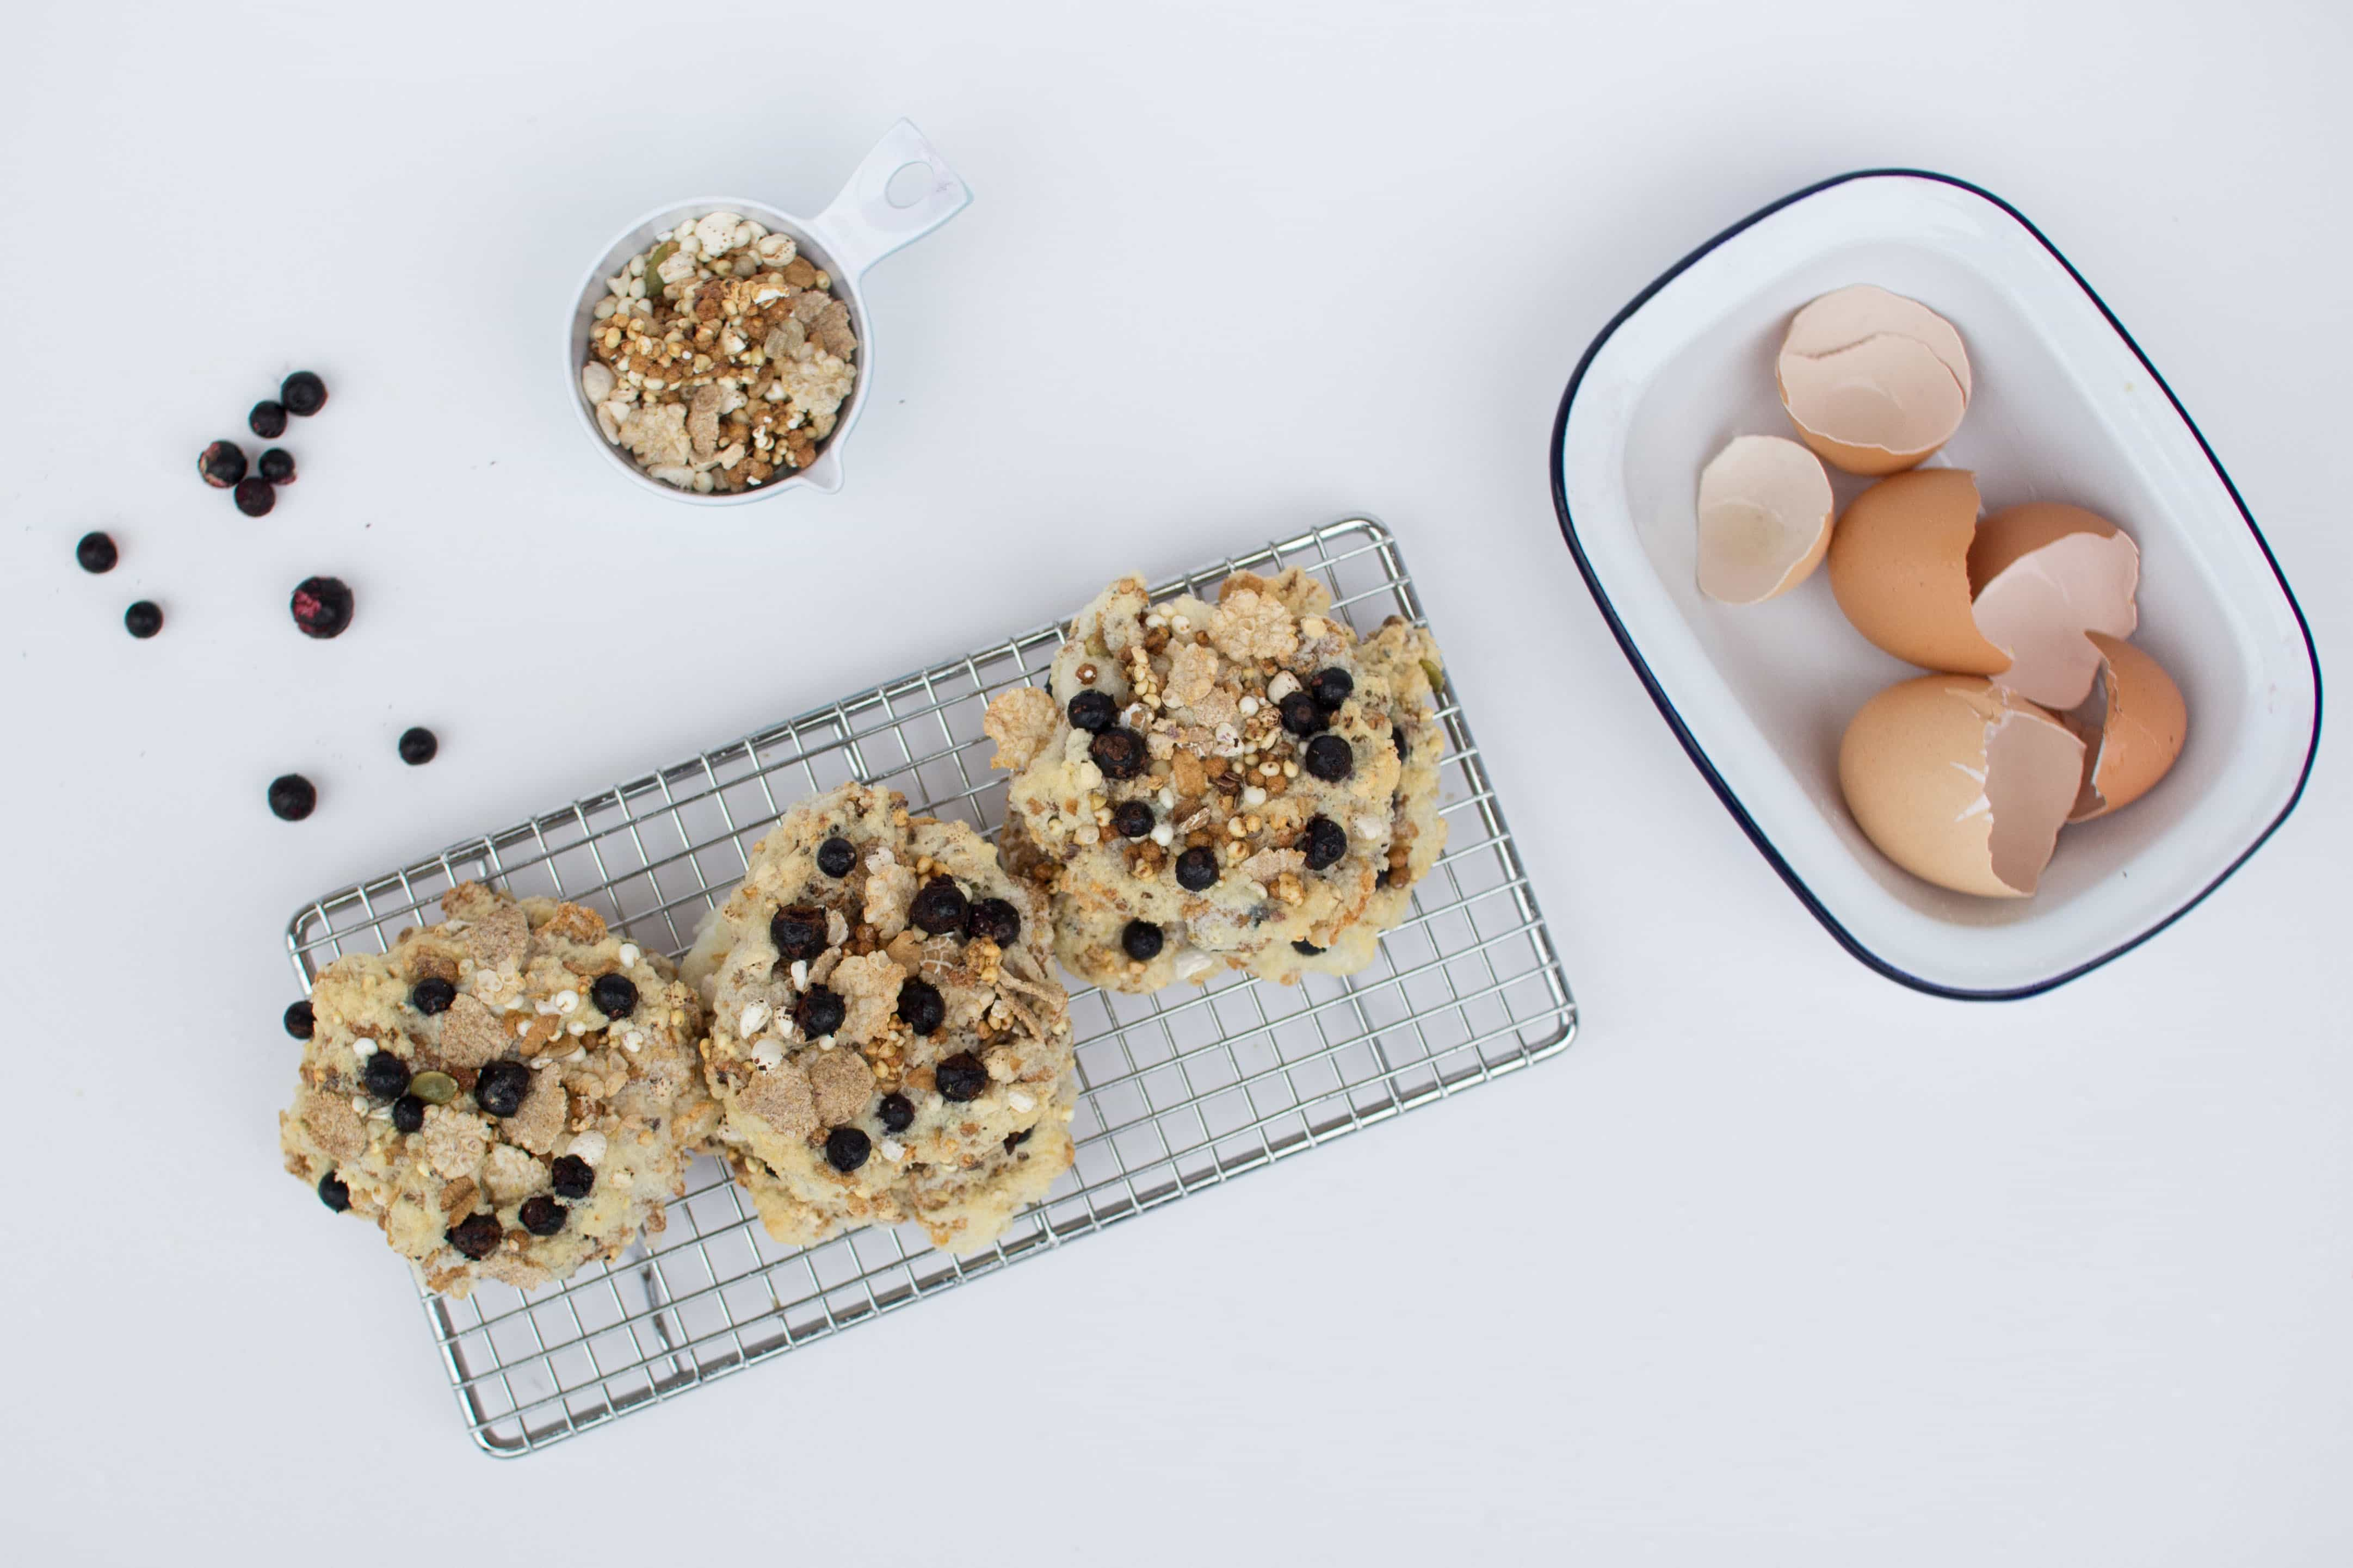 A new, lighter breakfast routine